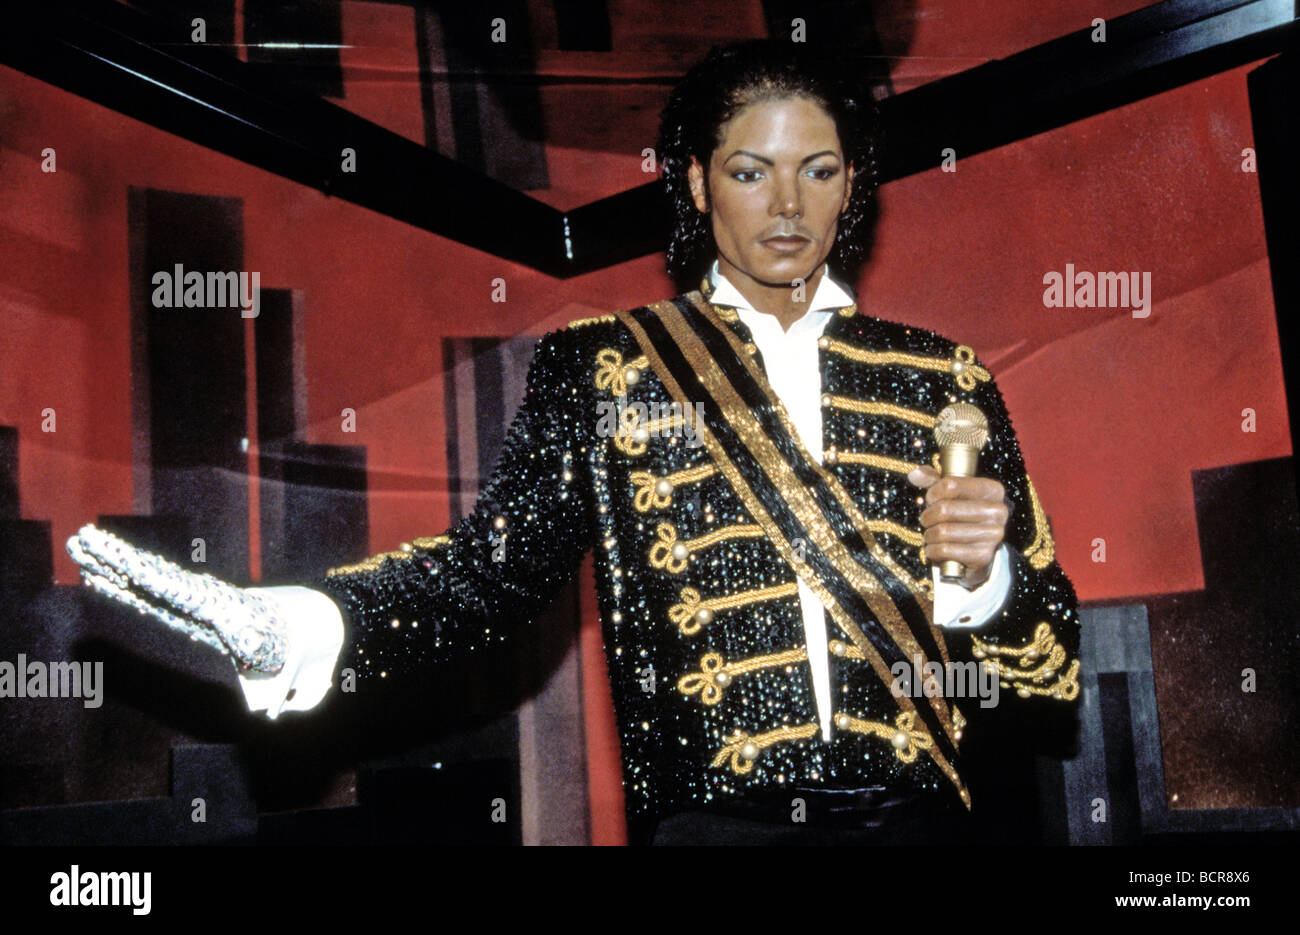 MICHAEL JACKSON  Waxwork model at the Rock Circus Piccadilly London in June 1997 - Stock Image